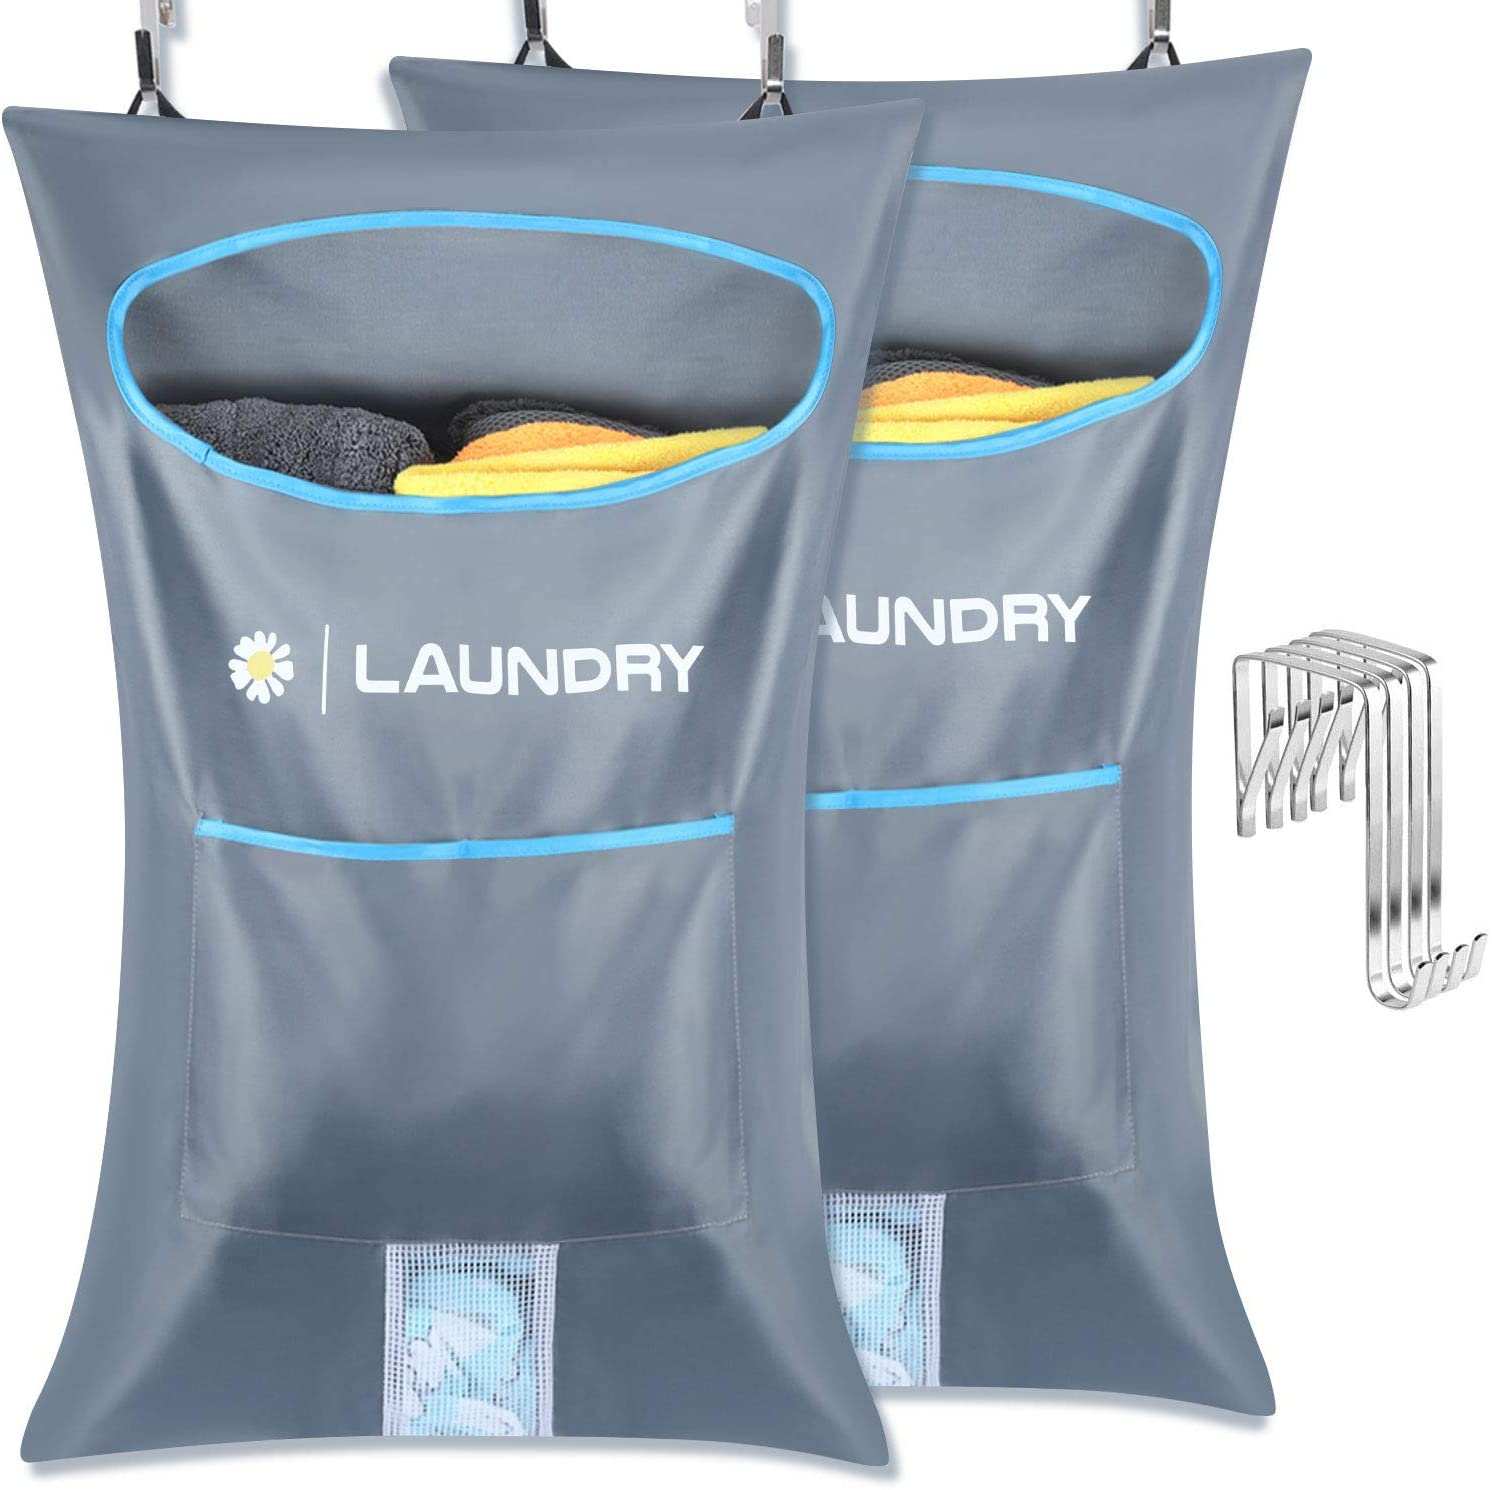 Lemecima 2PCs Laundry Bags,Hanging Laundry Hamper Bag, Clothes Hamper Laundry with 4 PCs Free Adjustable Stainless Steel Door 4 PCs Suction Cup Hooks, for Holding Dirty Clothes and Saving Space